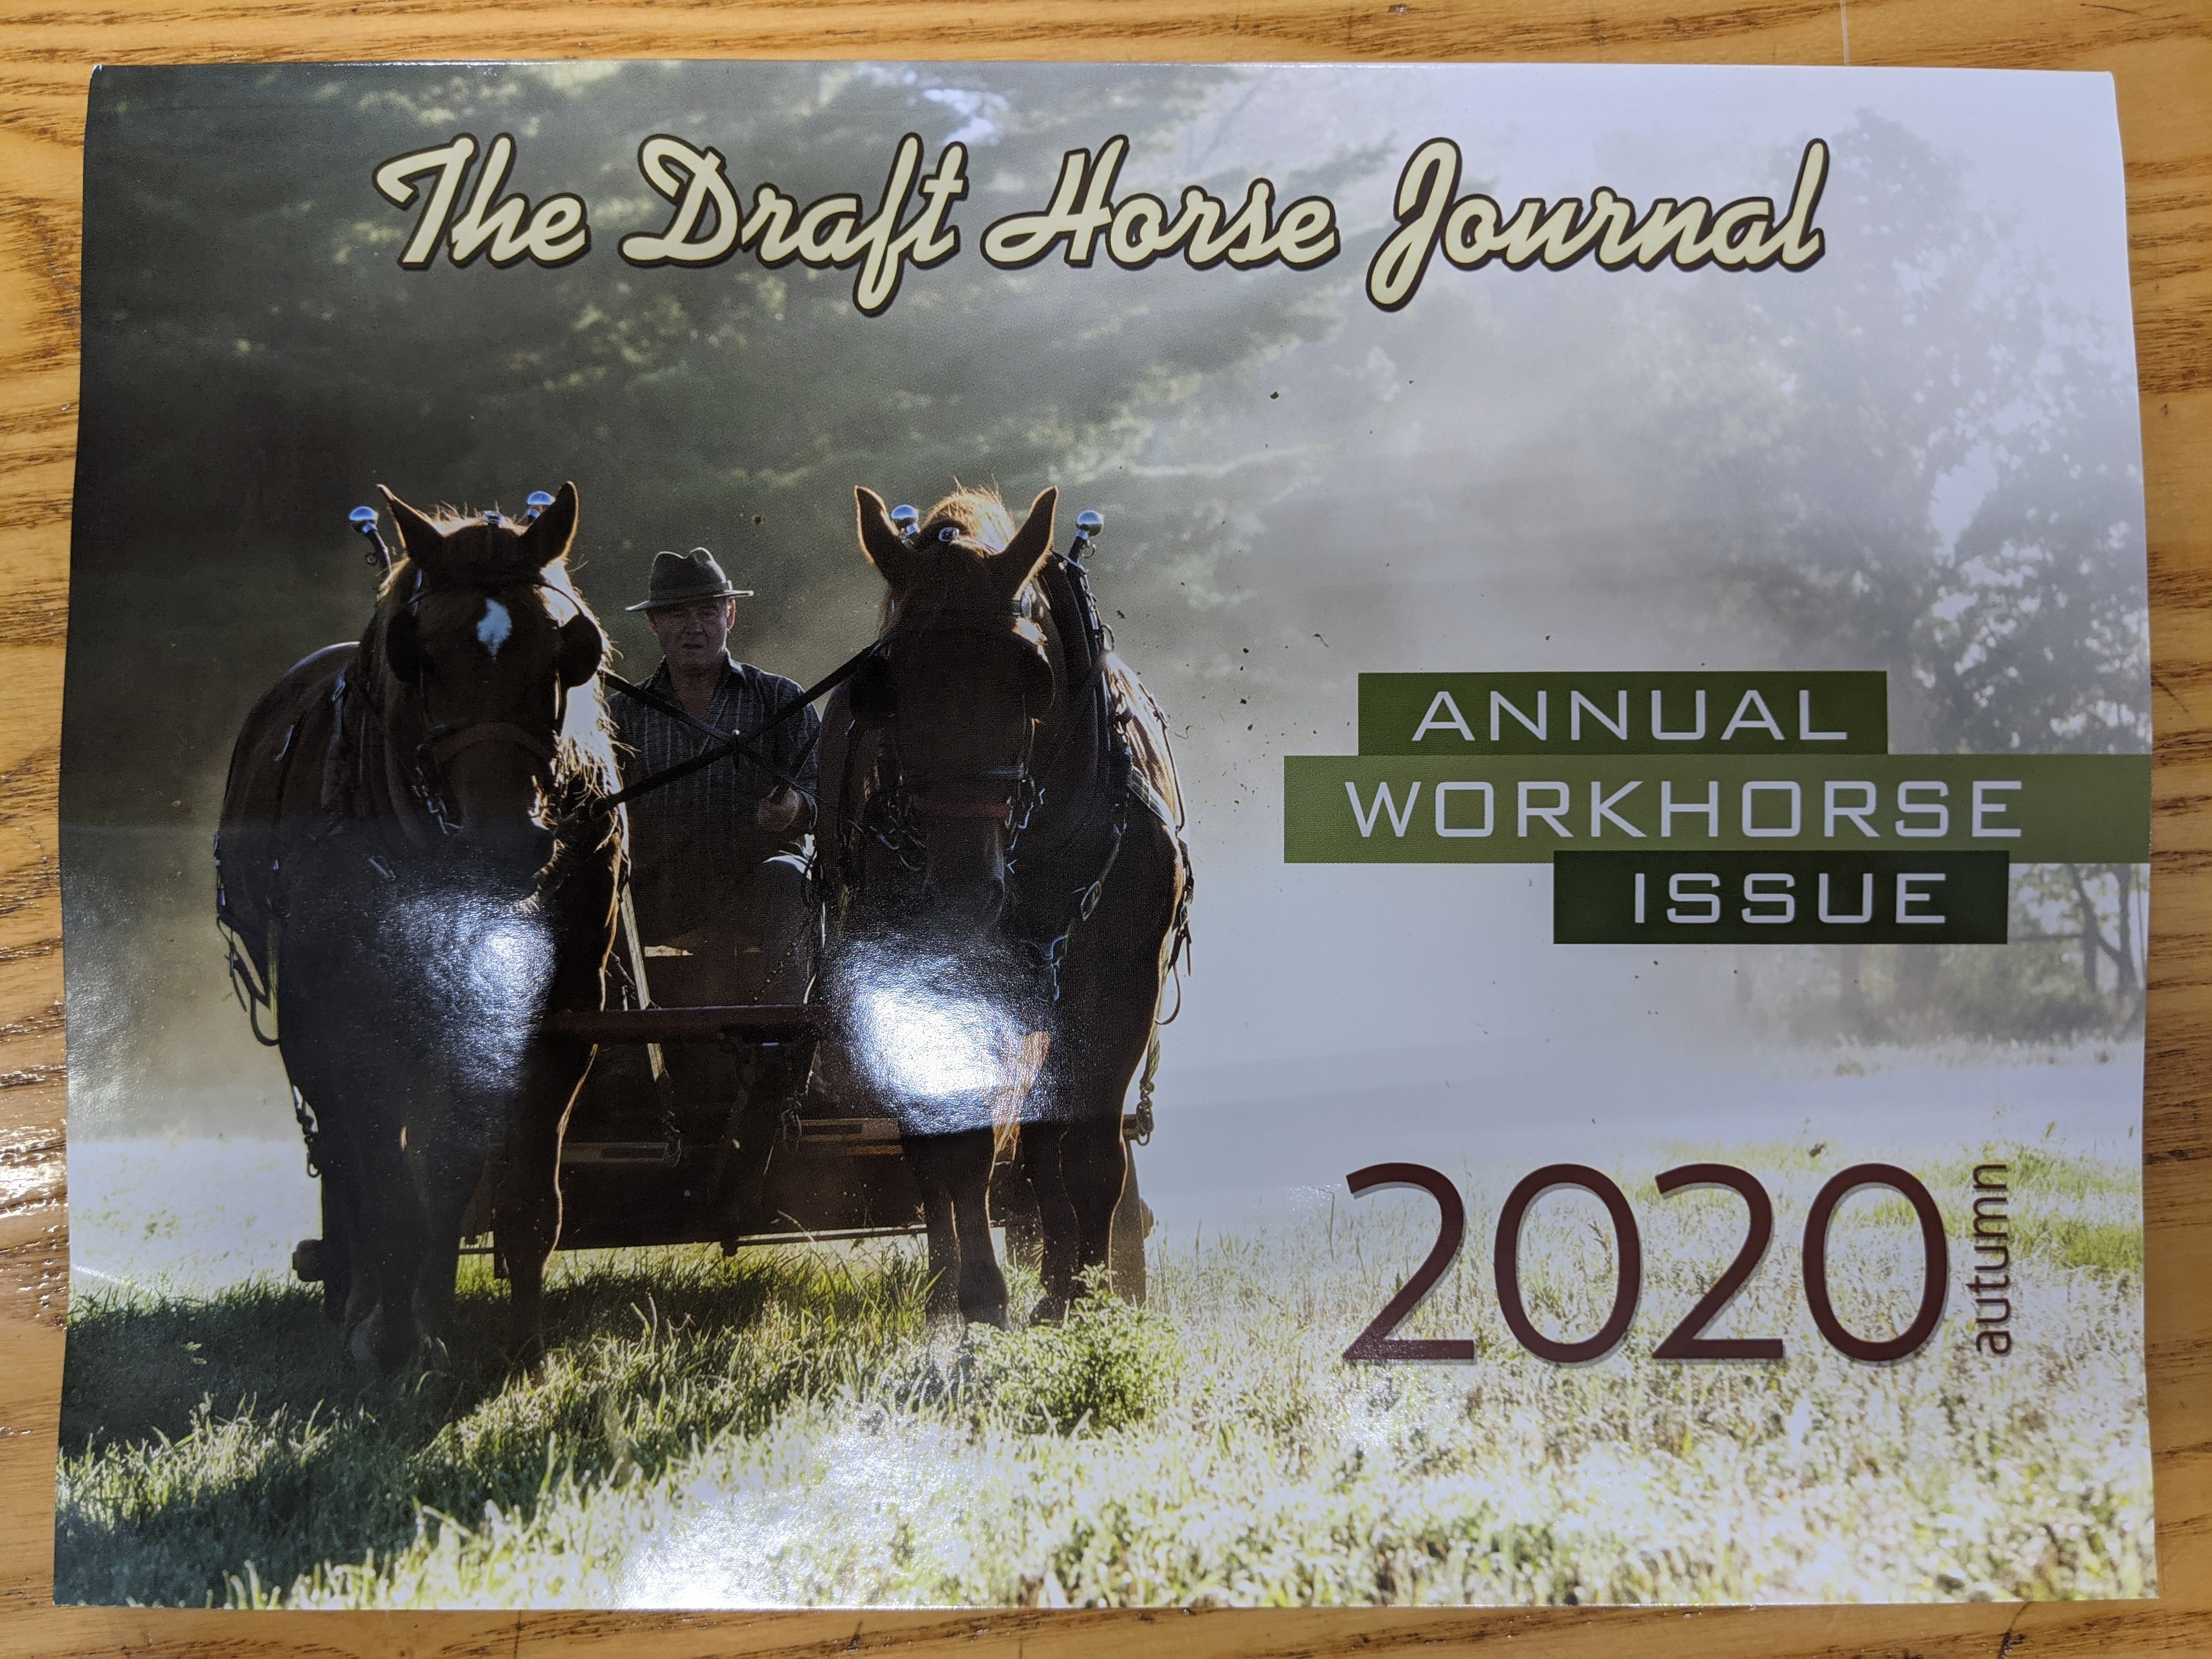 The Draft Horse Journal